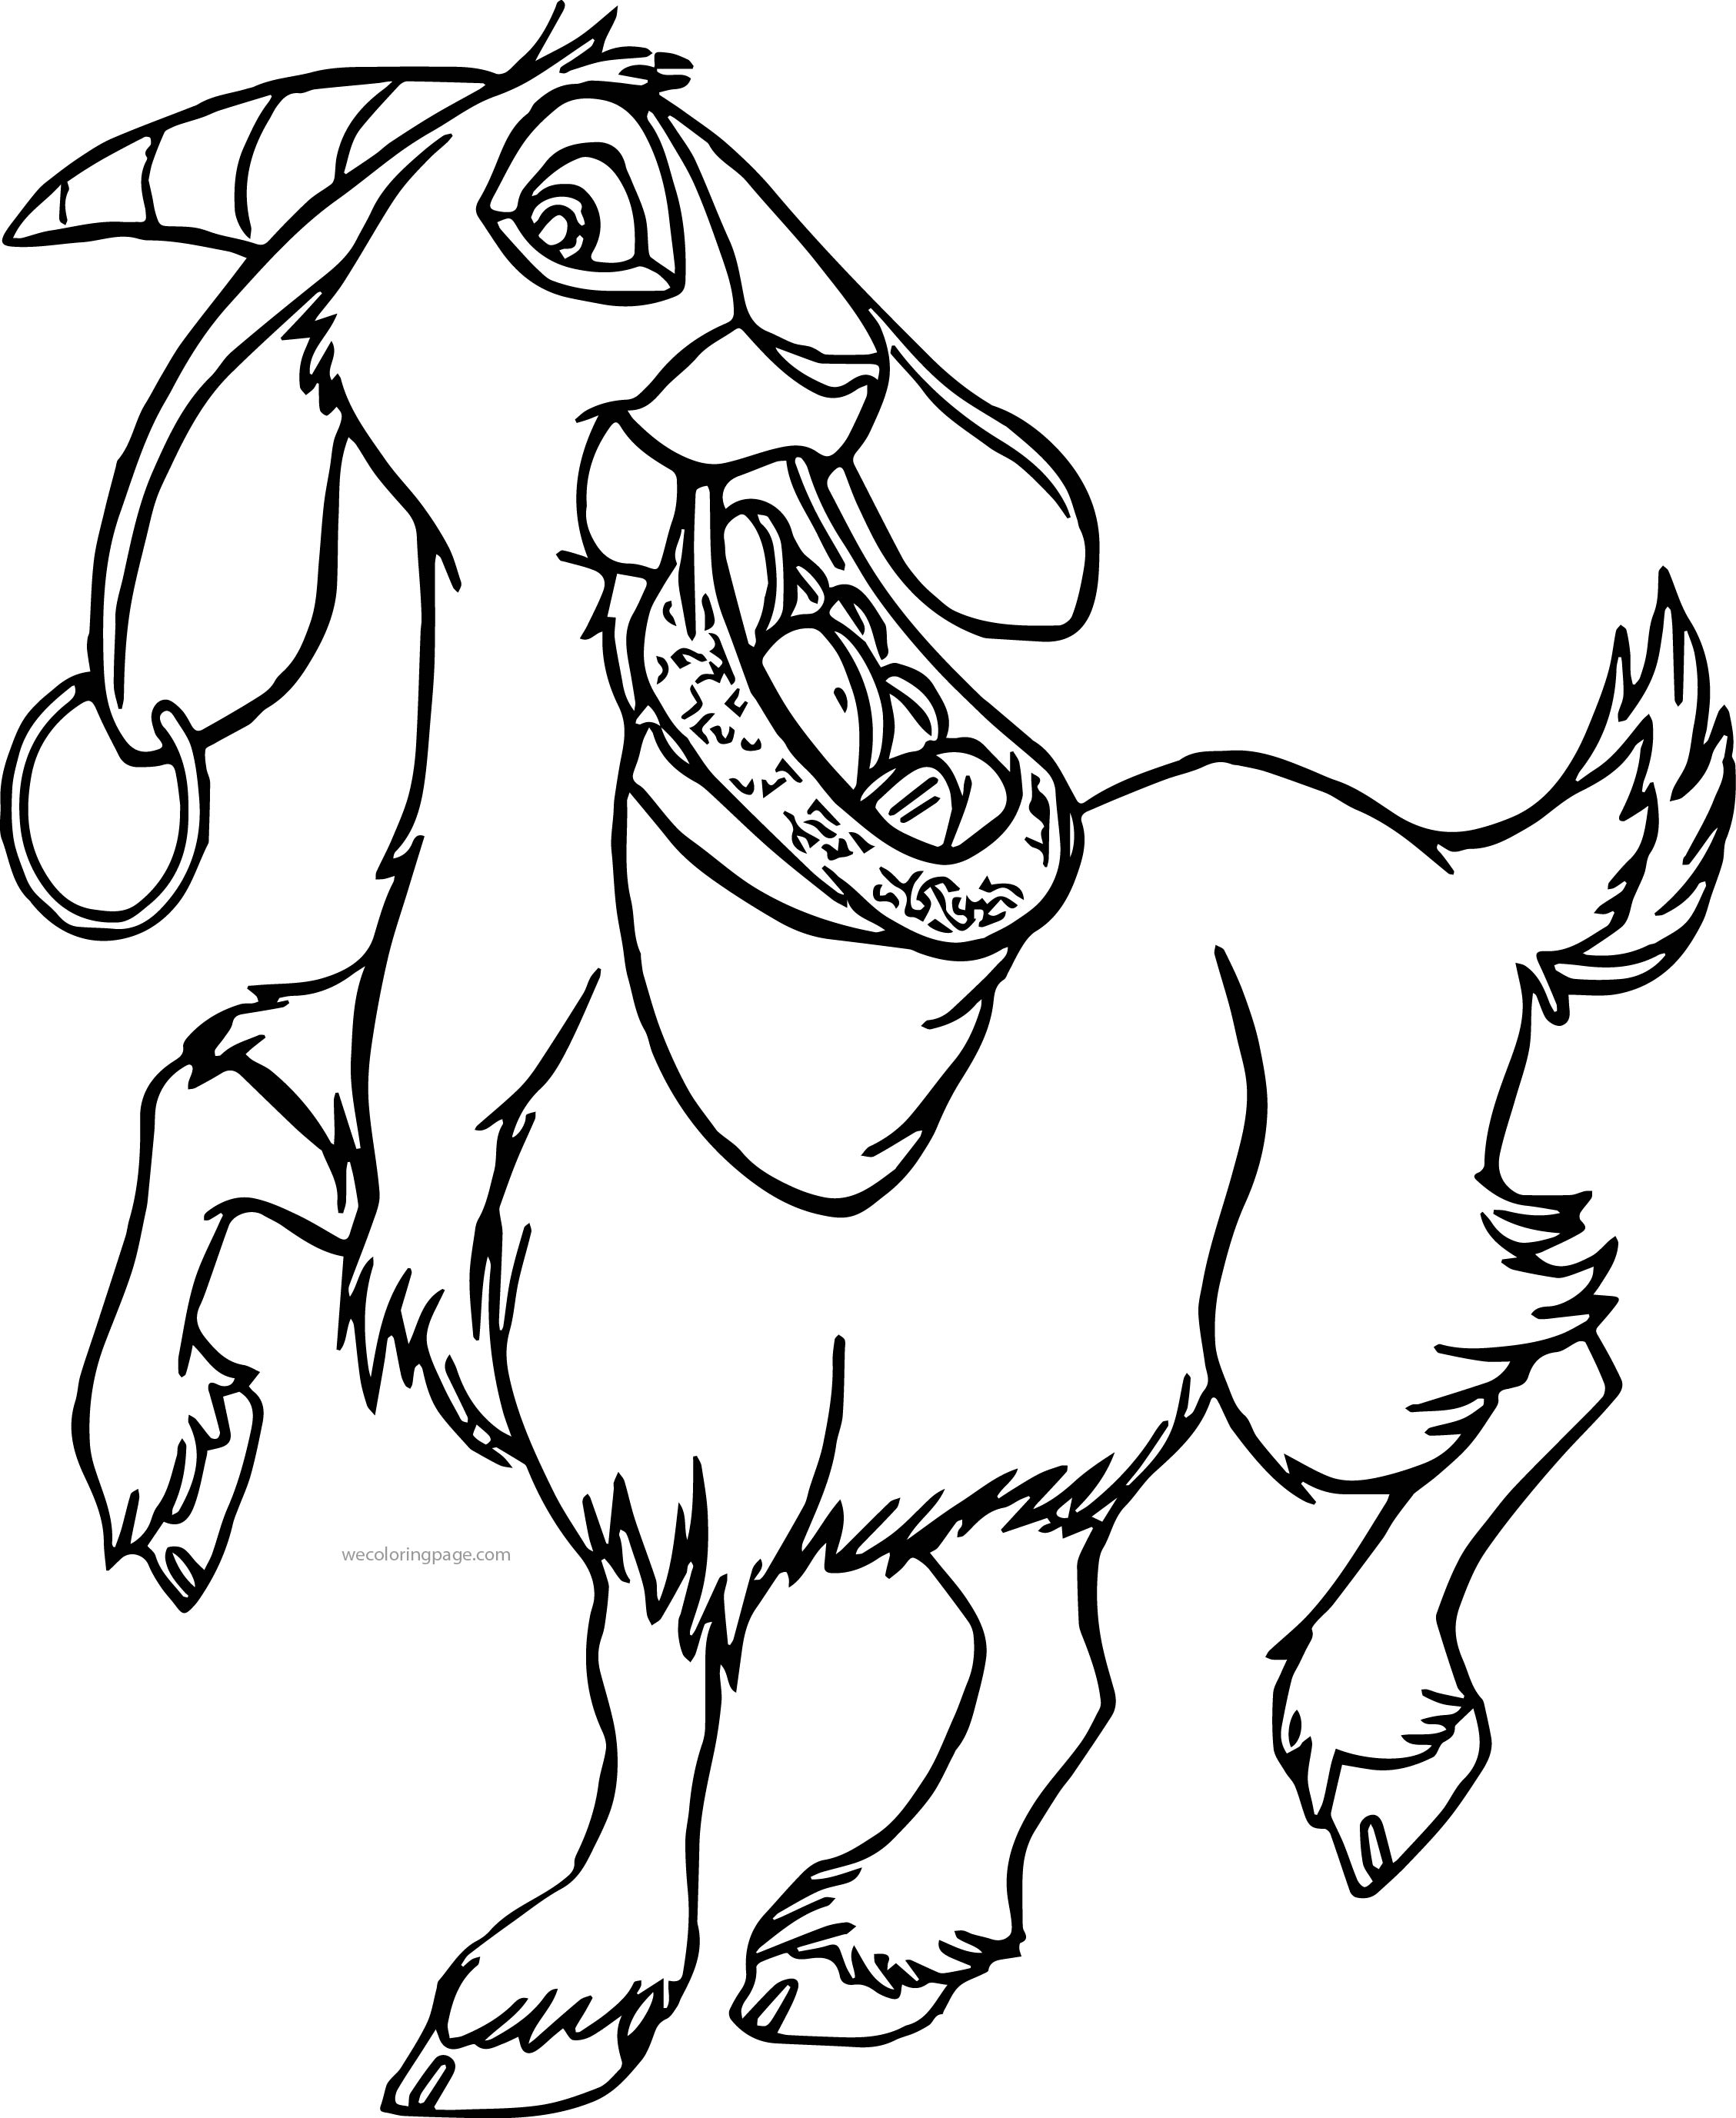 The Hunchback Of Notre Dame Djali Coat 3 Cartoon Coloring Pages